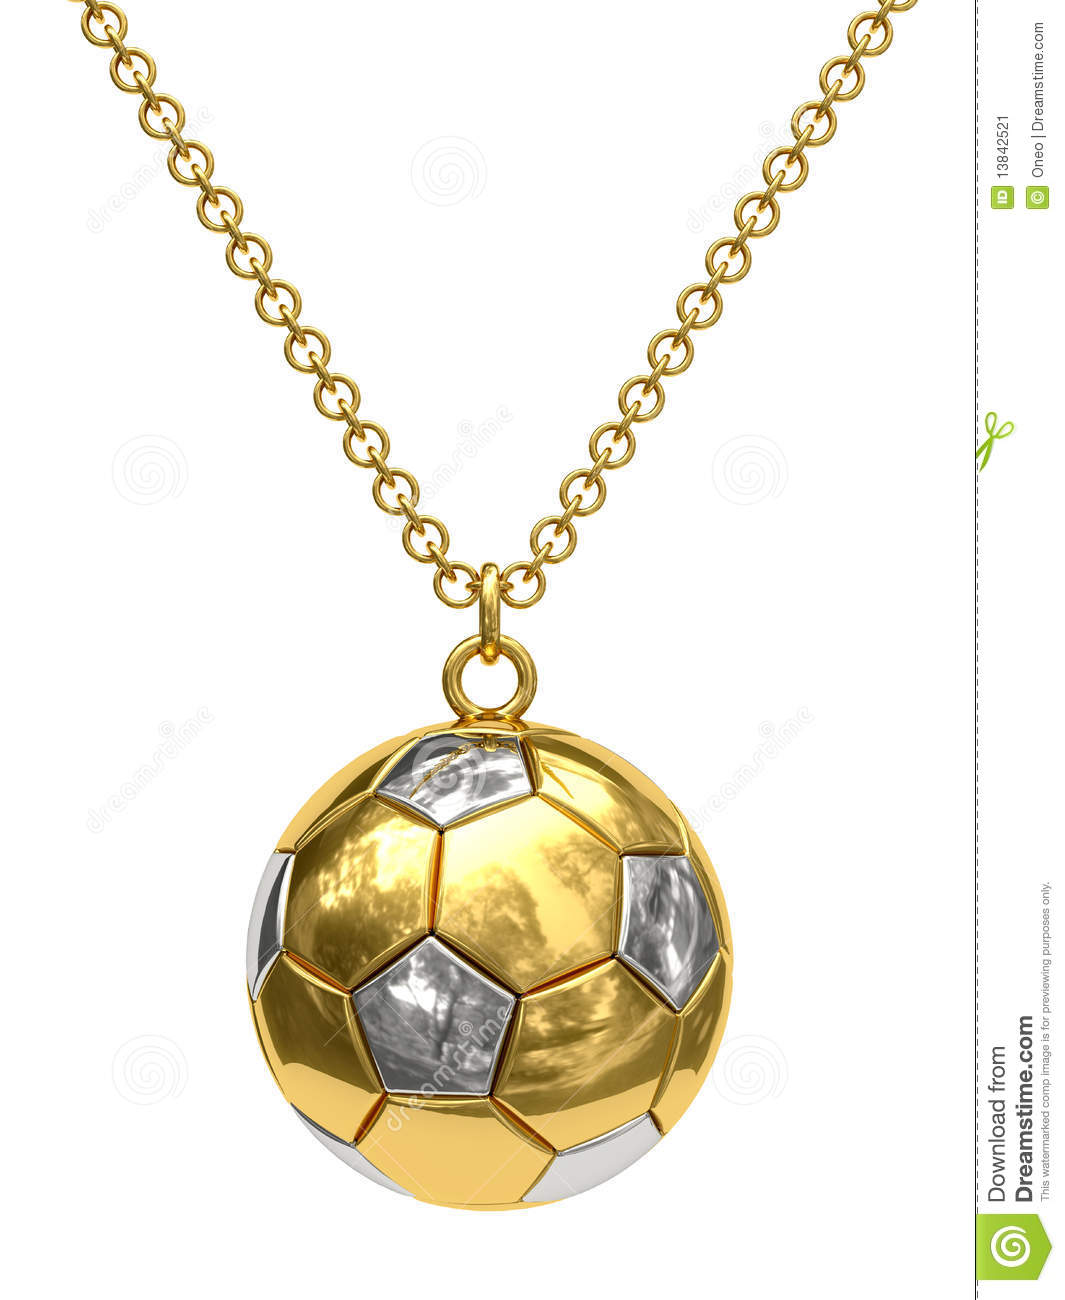 Gold pendant in shape of soccer ball on chain